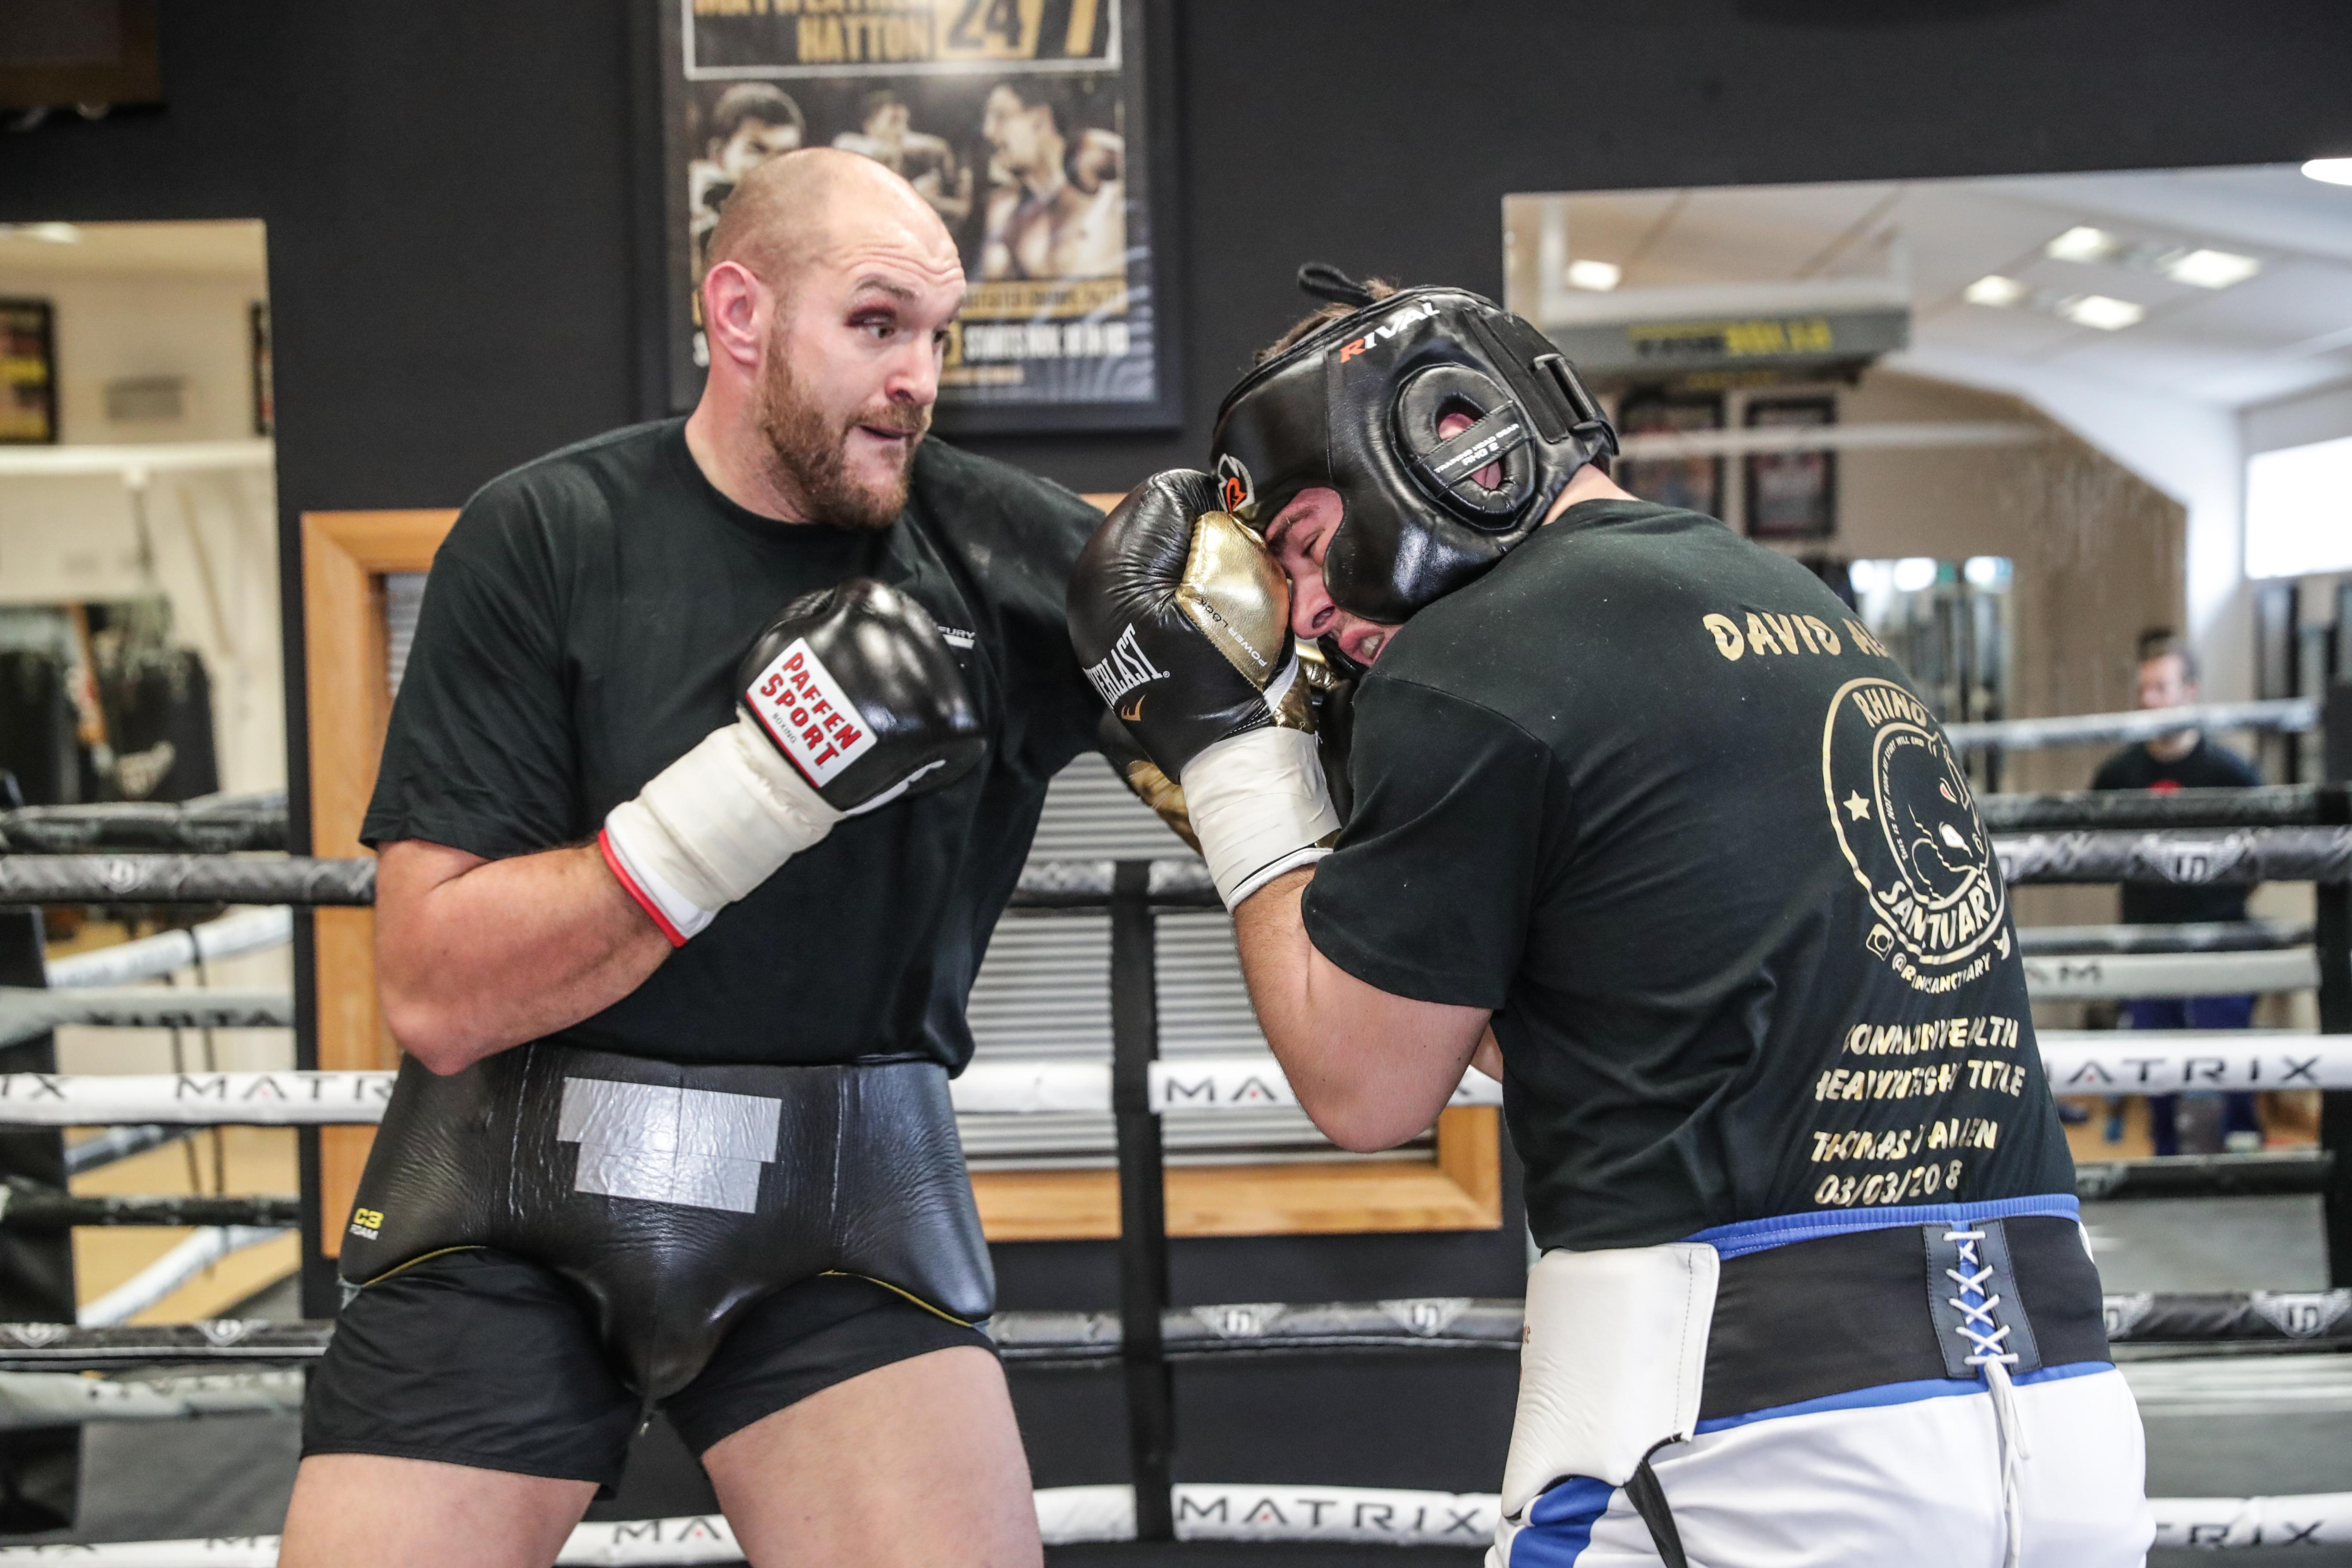 Tyson Fury has had some tough sessions in the ring sparring with David Allen, getting a black eye in the process